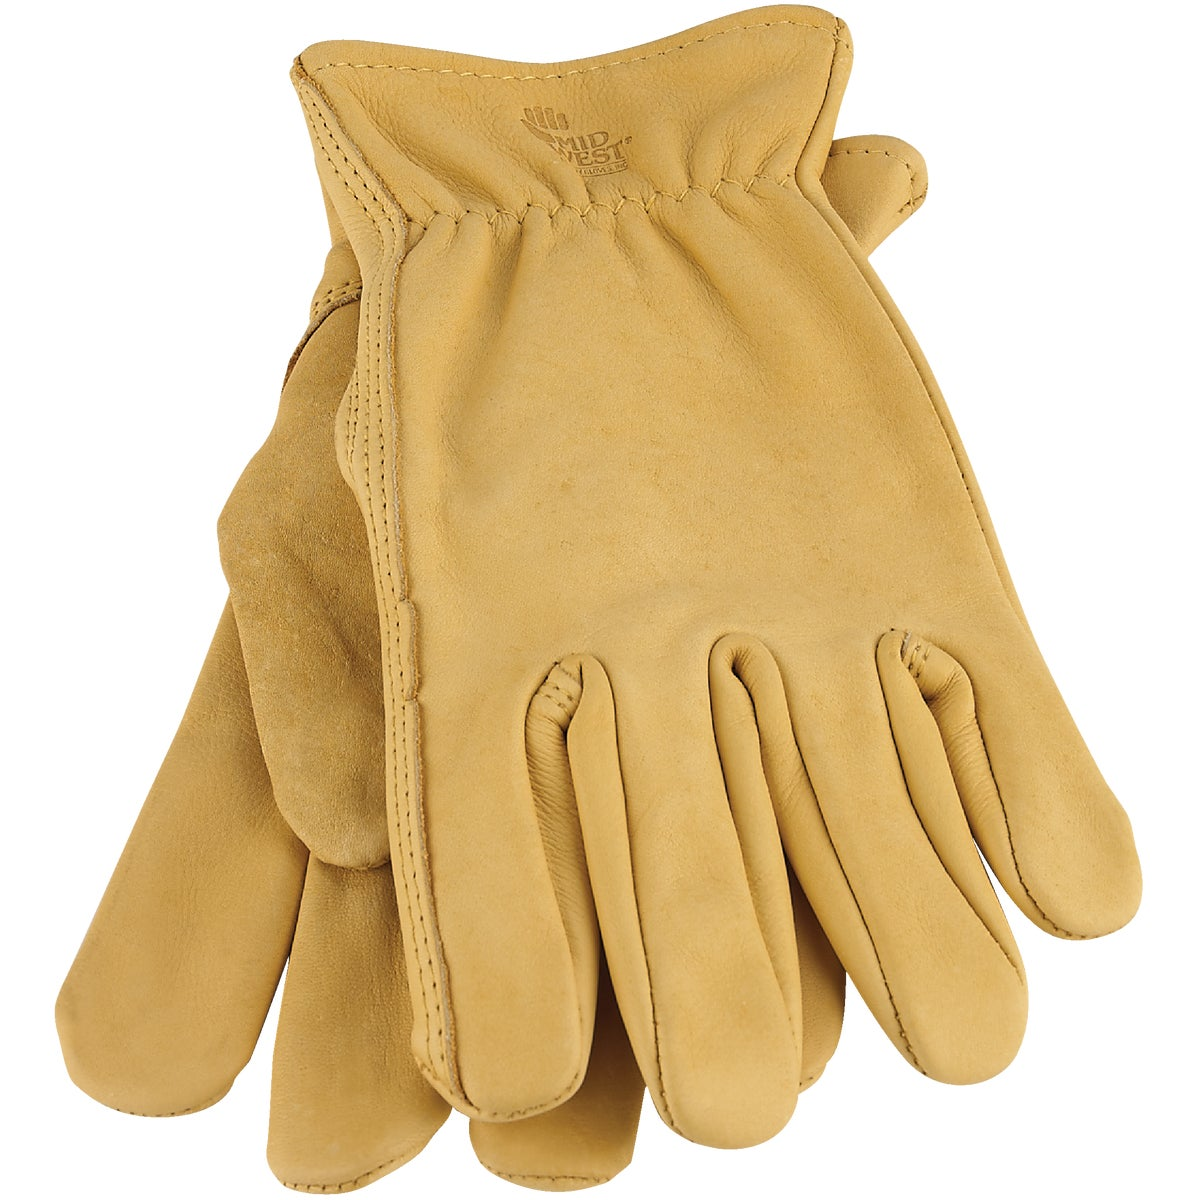 XL LEATHER GLOVE - 688XL by Midwest Quality Glov